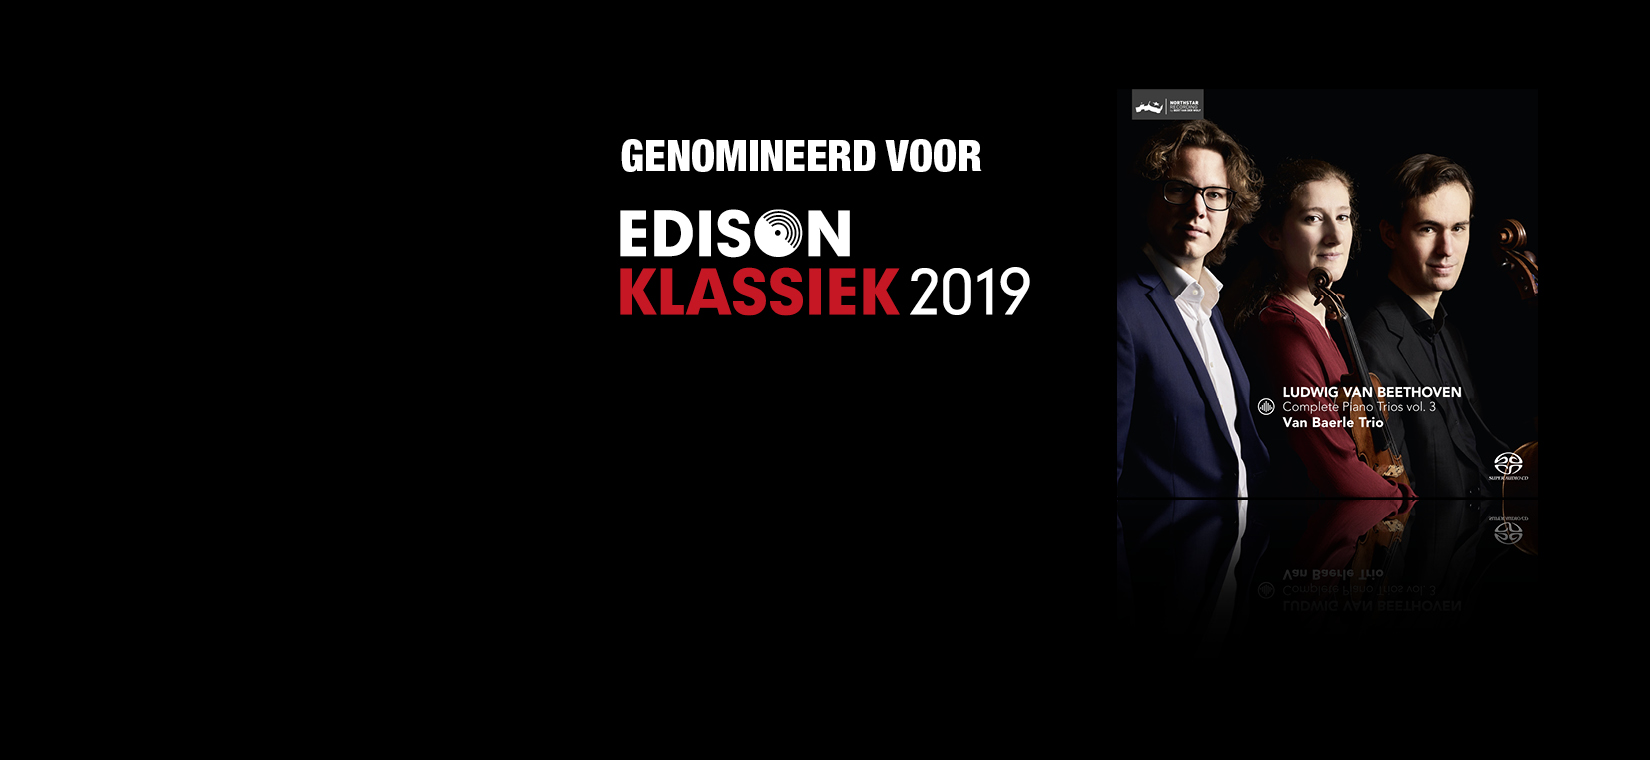 Van Baerle Trio nominated for Edison Audience Award 2019